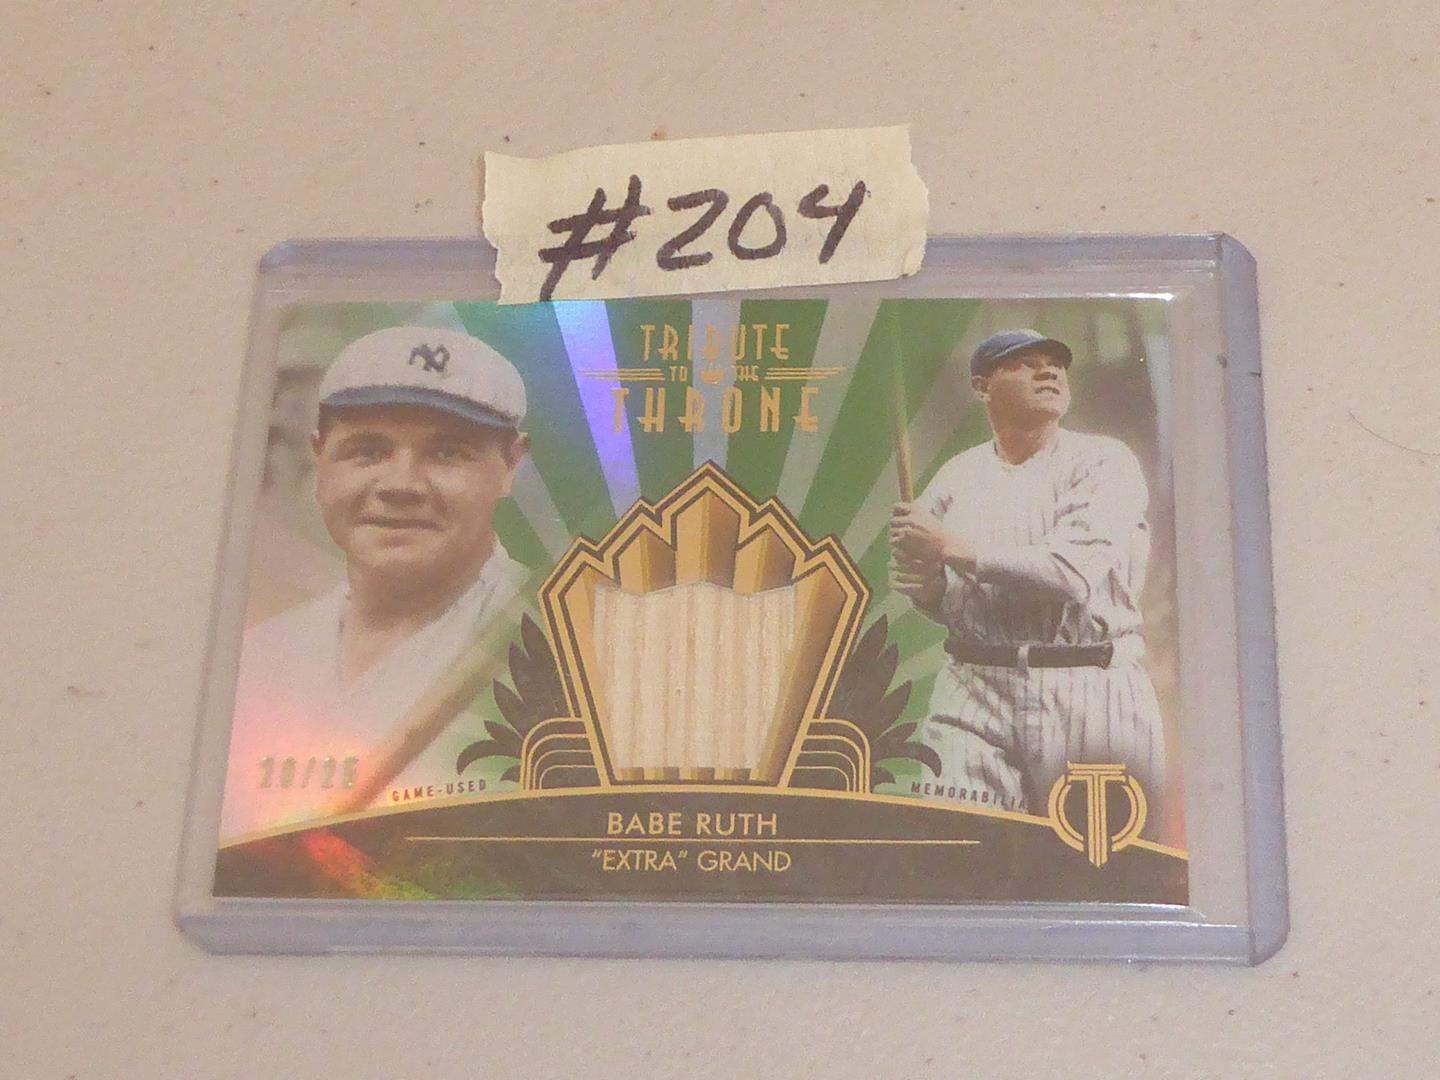 Lot # 204 - 2013 Topps Babe Ruth Relic Card (main image)